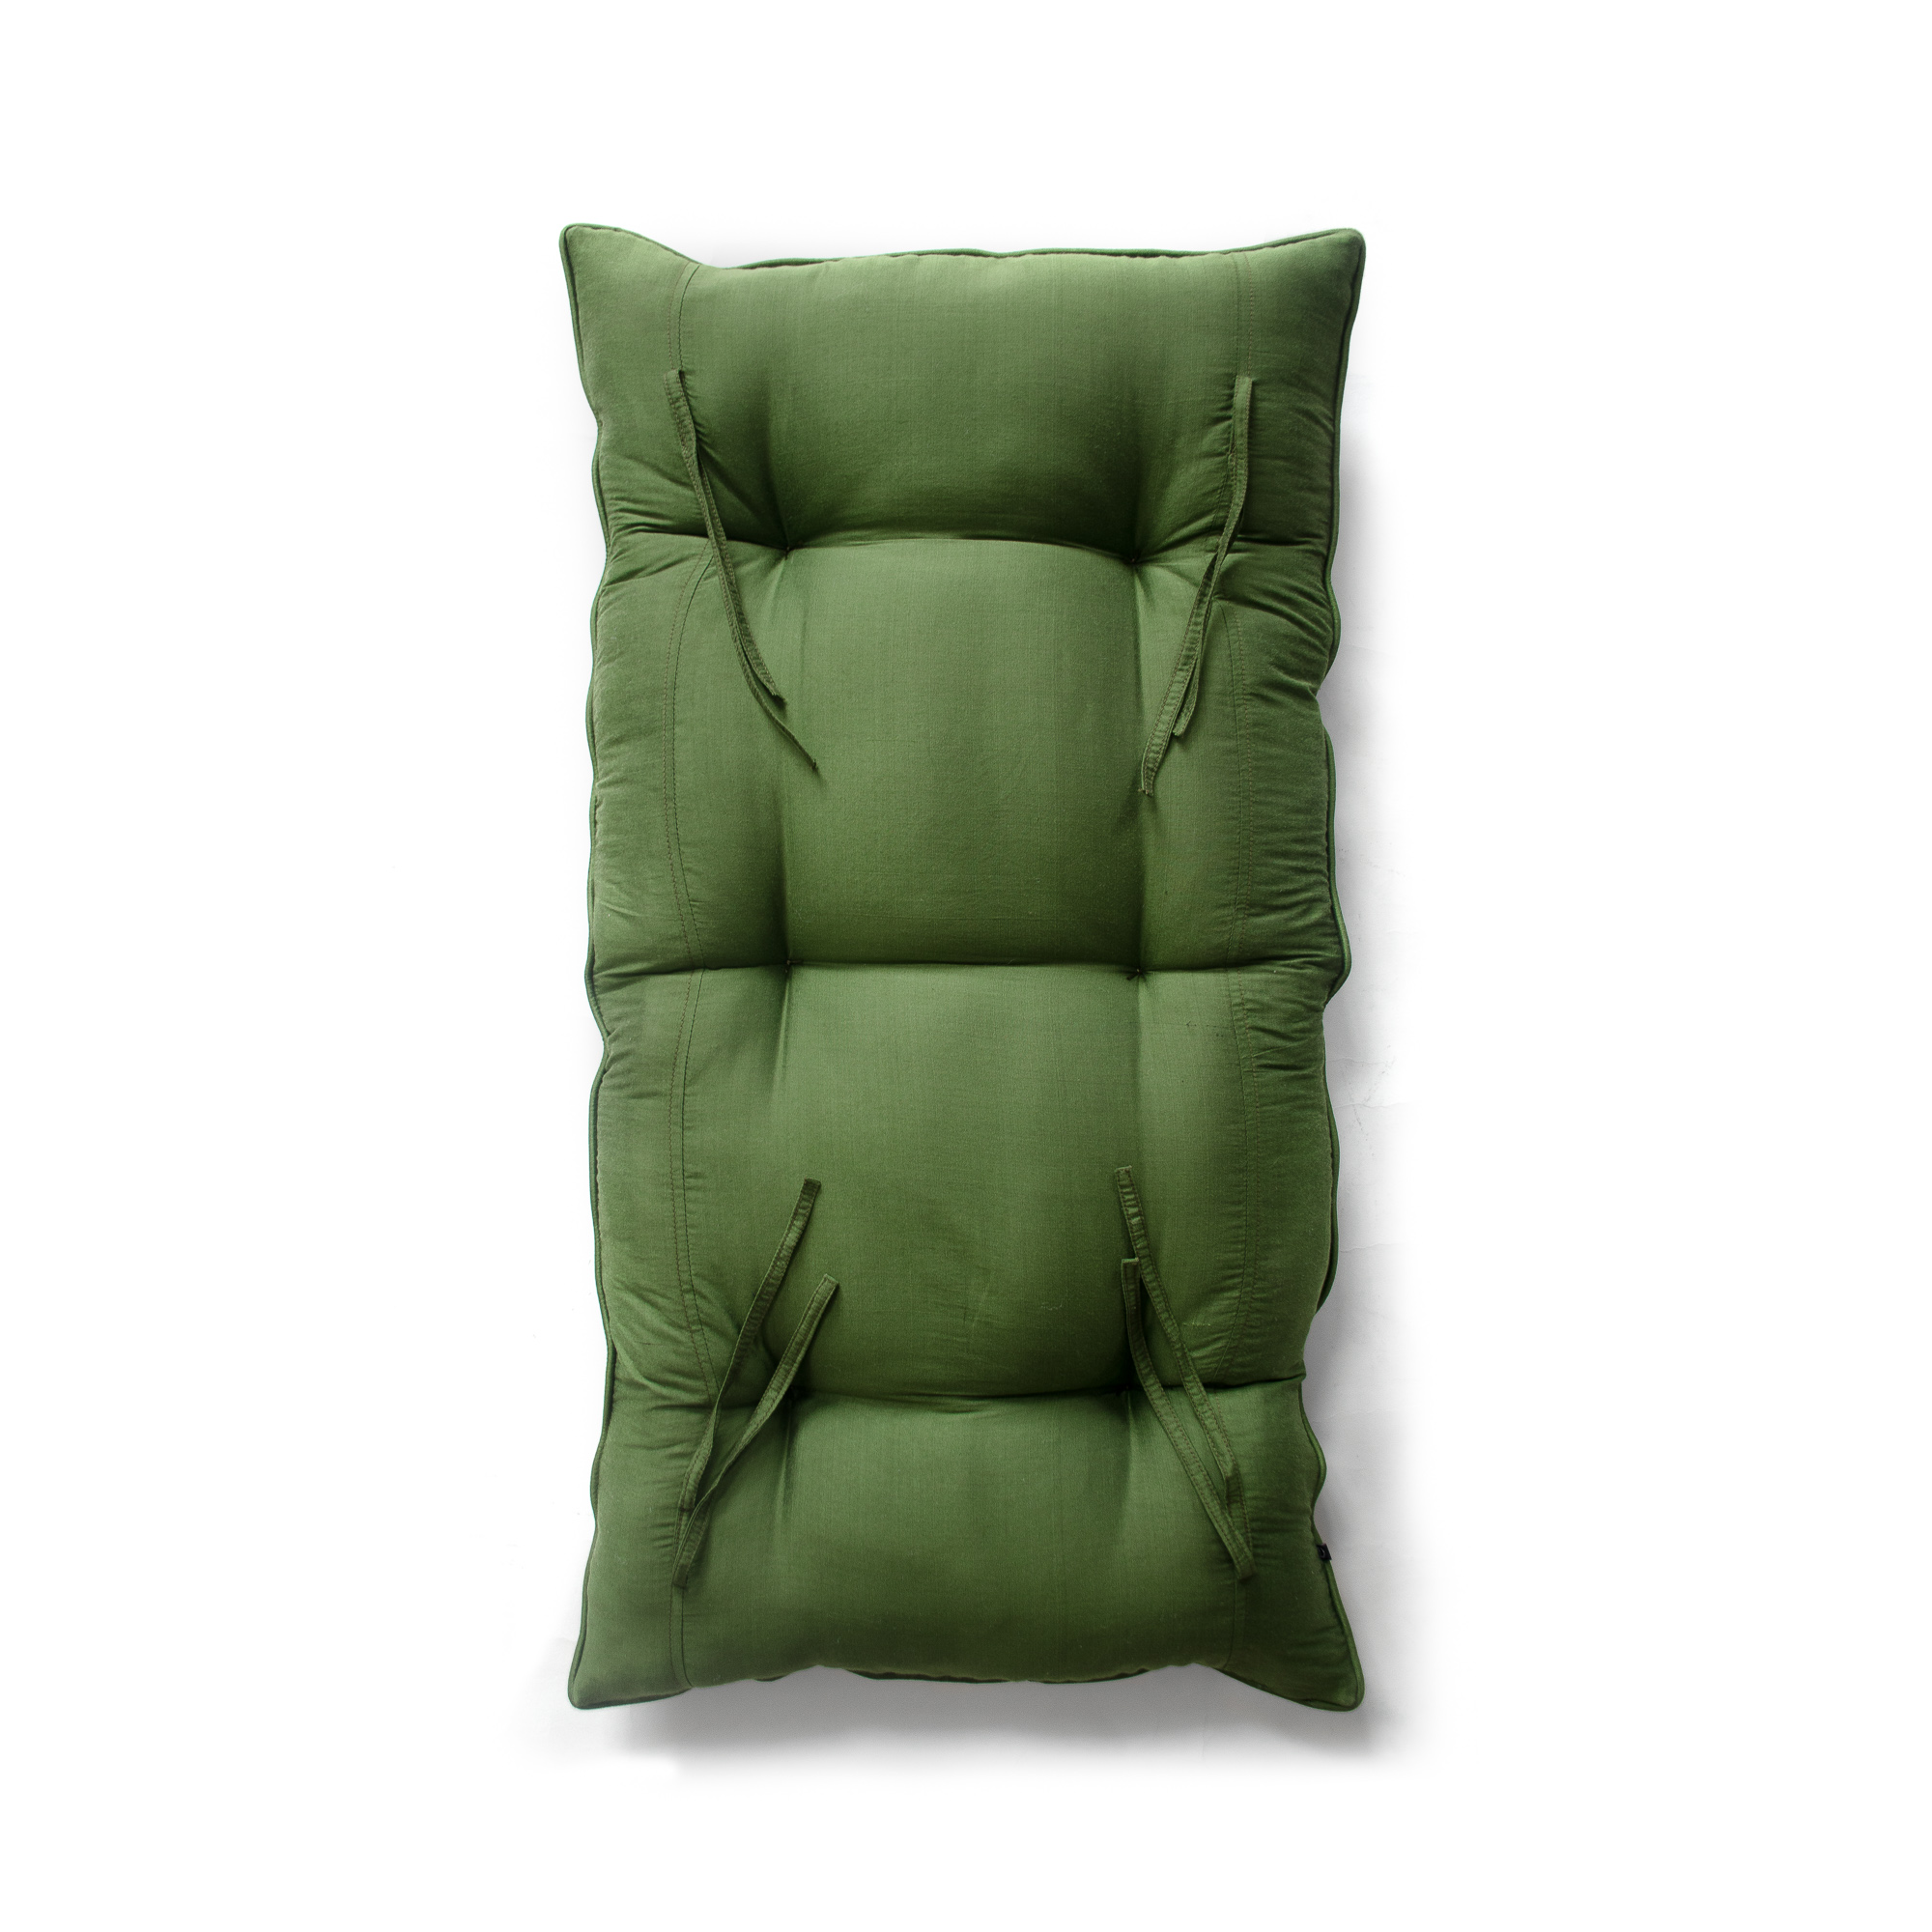 CHAIR TIE-UP CUSHION BASIL